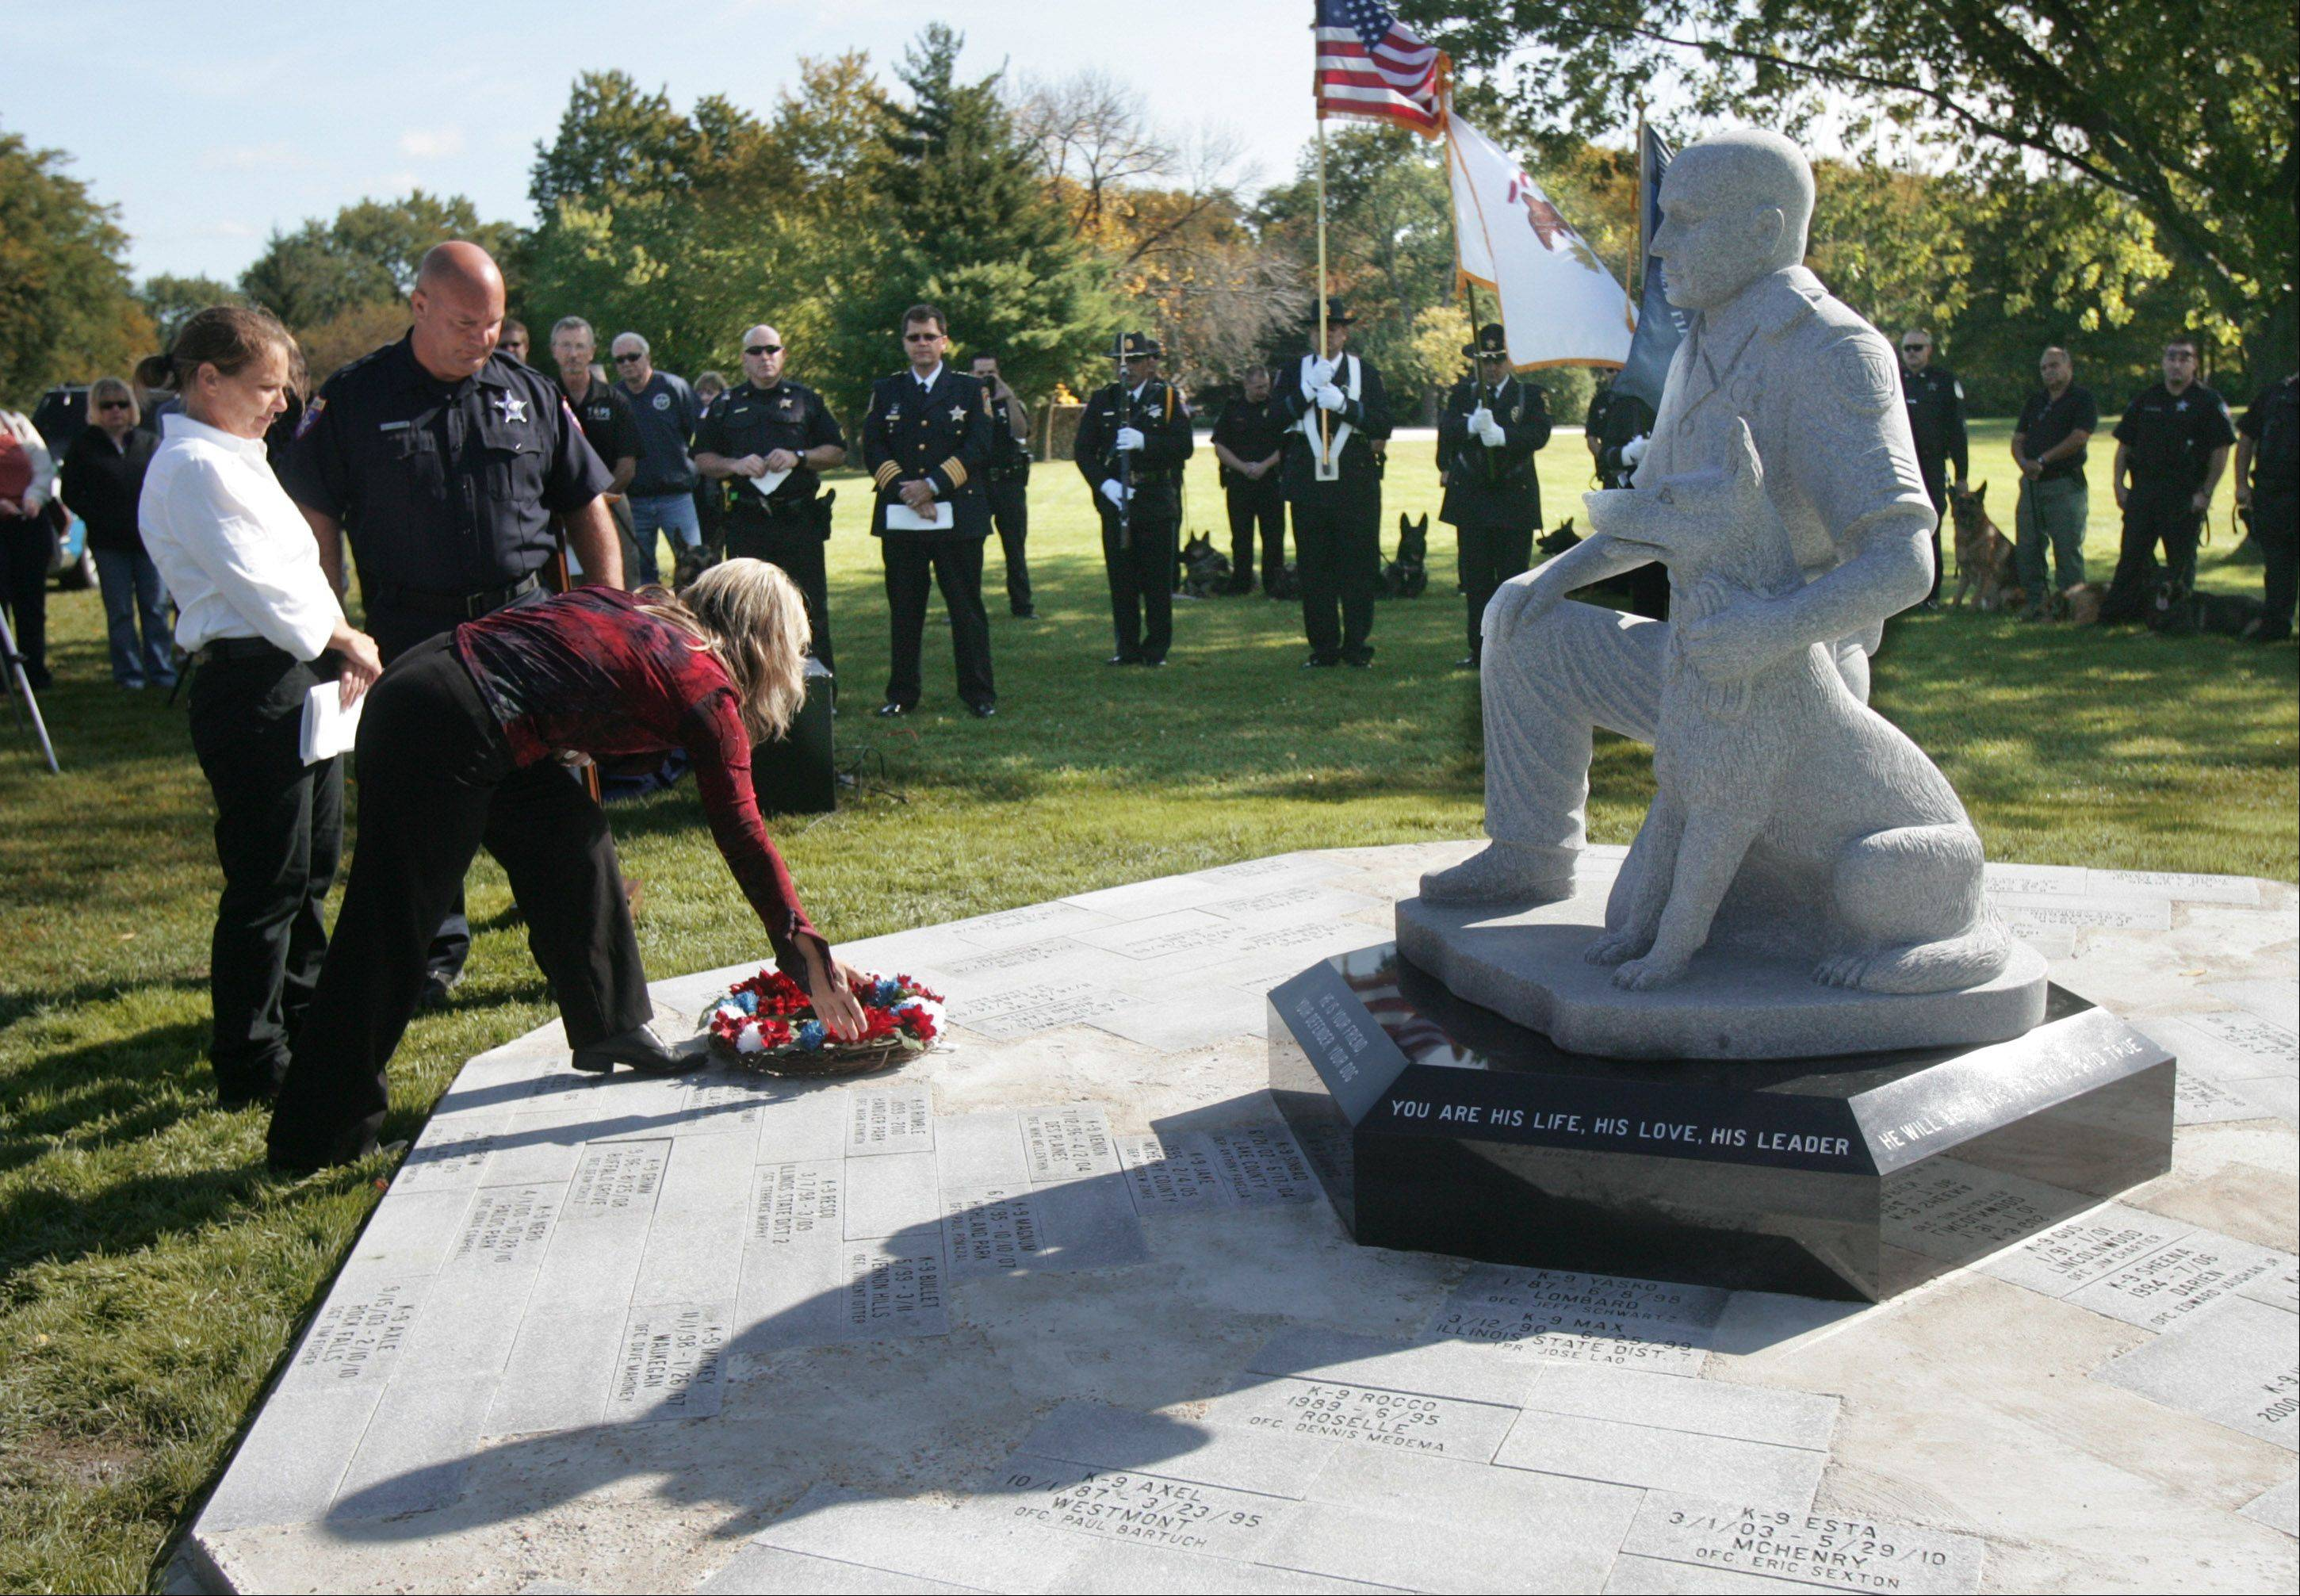 Gilbert R. Boucher II/gboucher@dailyherald.comTraci Sikorski places a wreath at the memorial with Paula Rothacker and Anthony Fanella, members of the memorial committee, during the first annual ceremony for the Northern IL Police K-9 Memorial Wednesday at Highland Memorial Park Cemetery in Gurnee. A memorial statue was unveiled and 79 dogs were given tribute for their service.